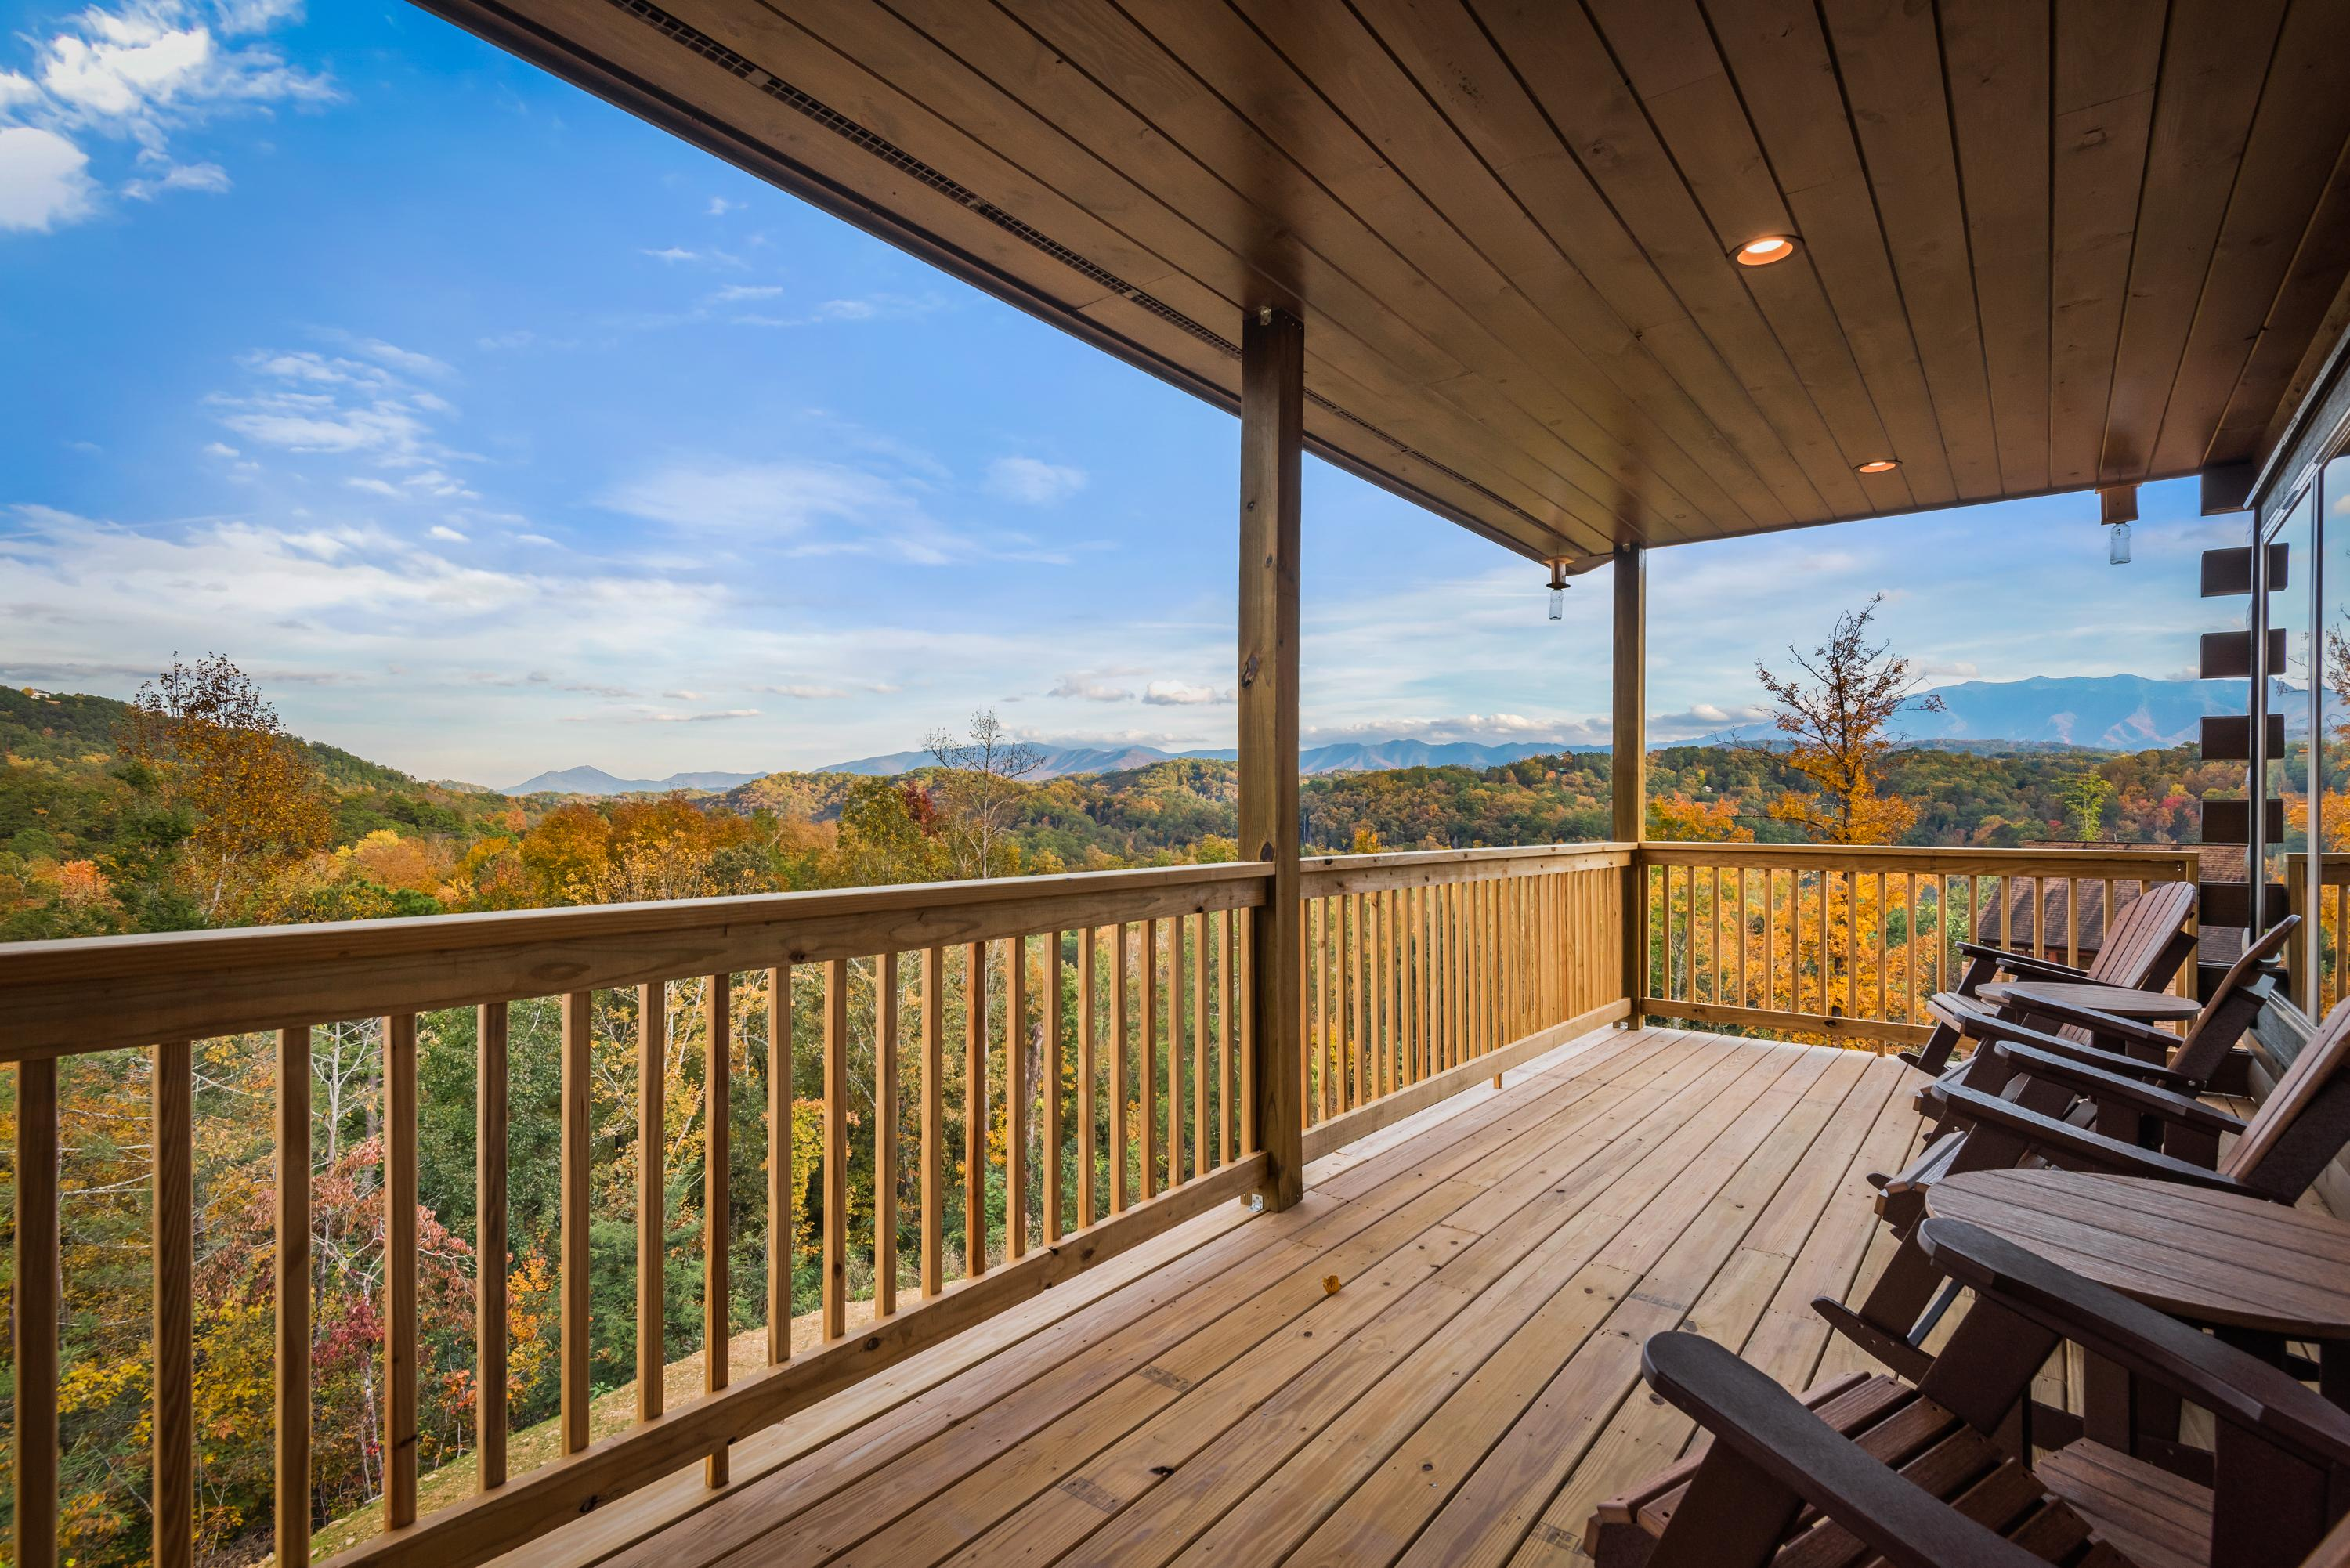 Property Image 1 - Stunning Mountain Home with Sweeping Views of the Valley